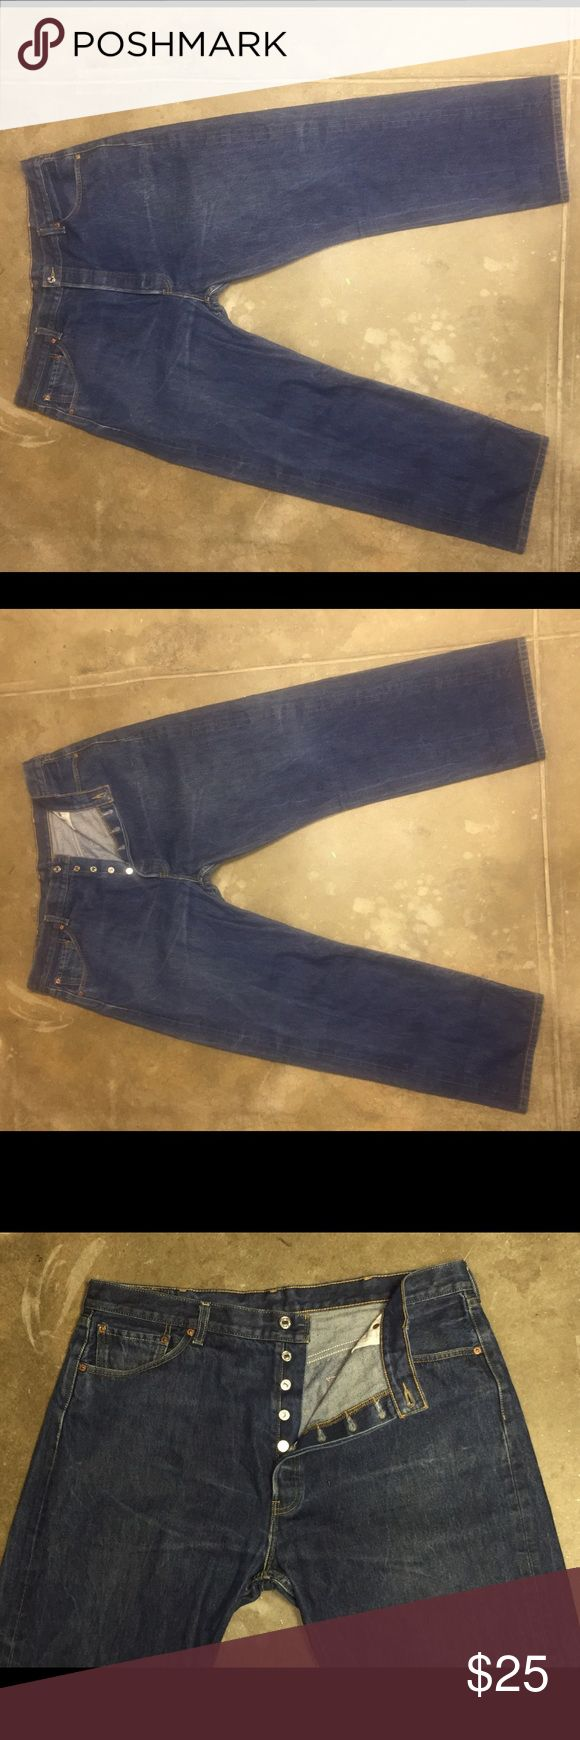 Levi's 501 42 X 32 Jeans Button Fly Straight Leg Up for sale is a pair of Levi's classic 501 jeans in Big and Tall size 42 x 32. These are in excellent condition. Levi's Jeans Straight